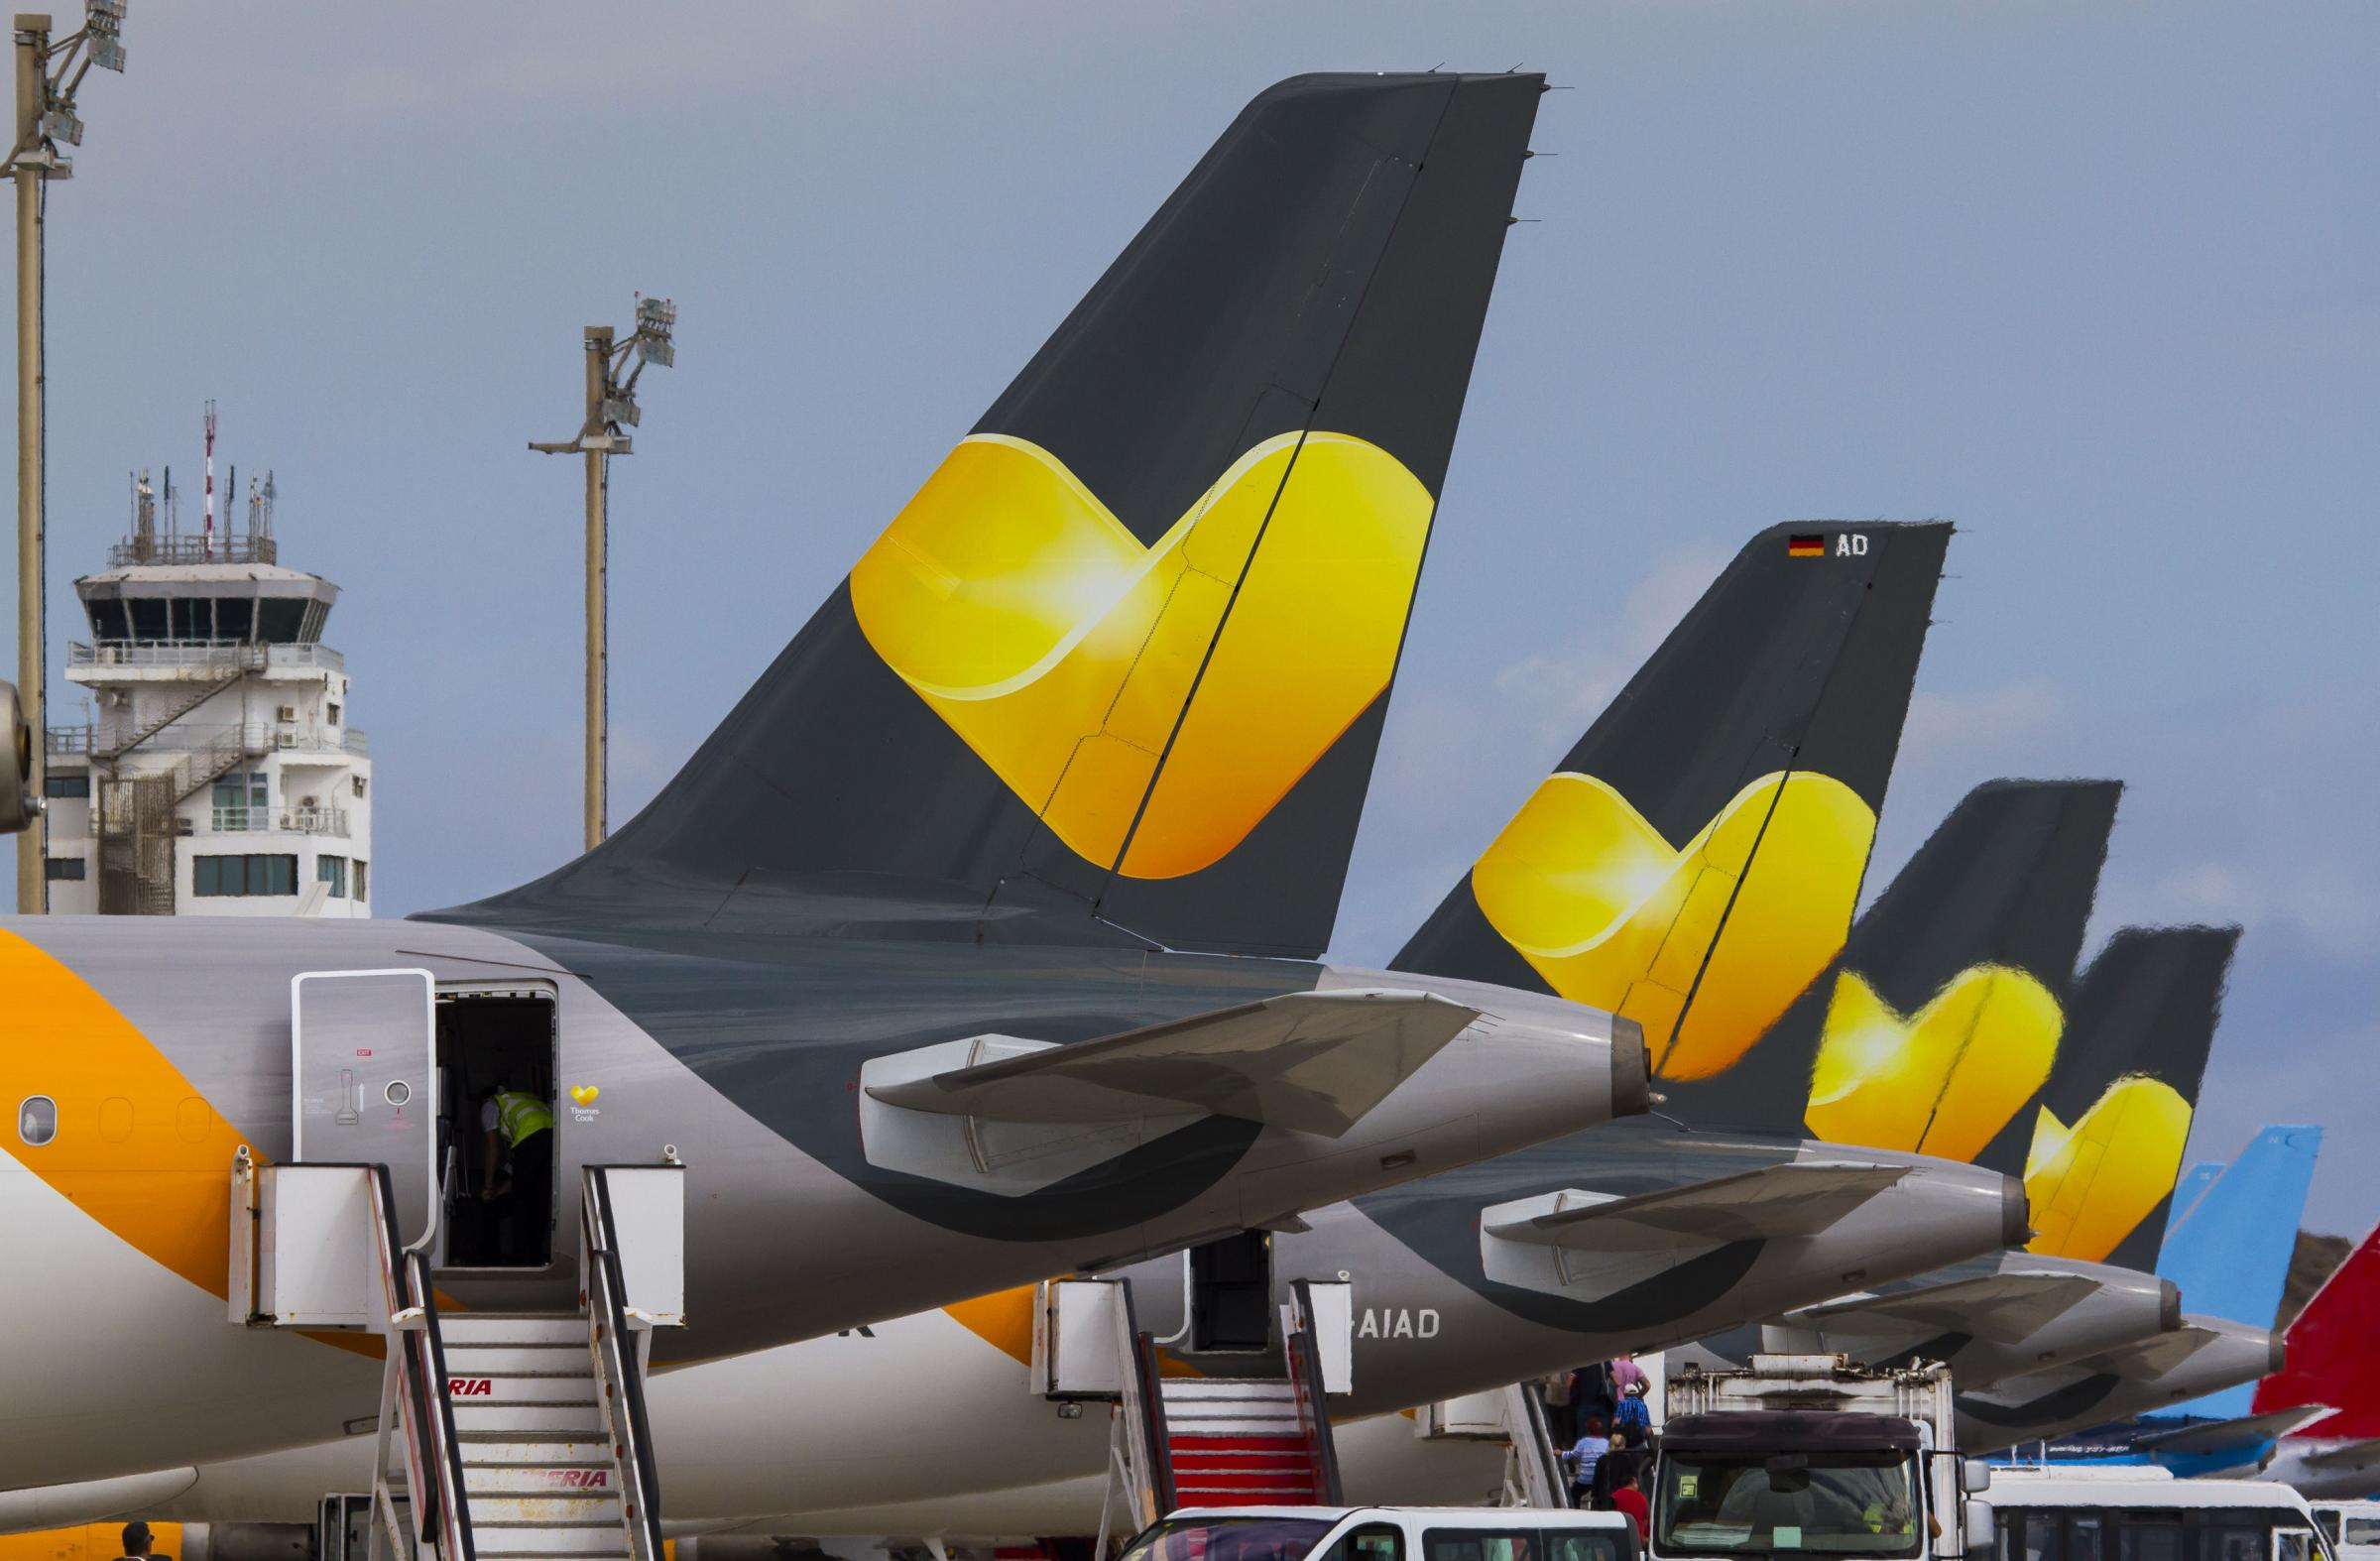 Thomas Cook warns it could 'run out of money' and go bust